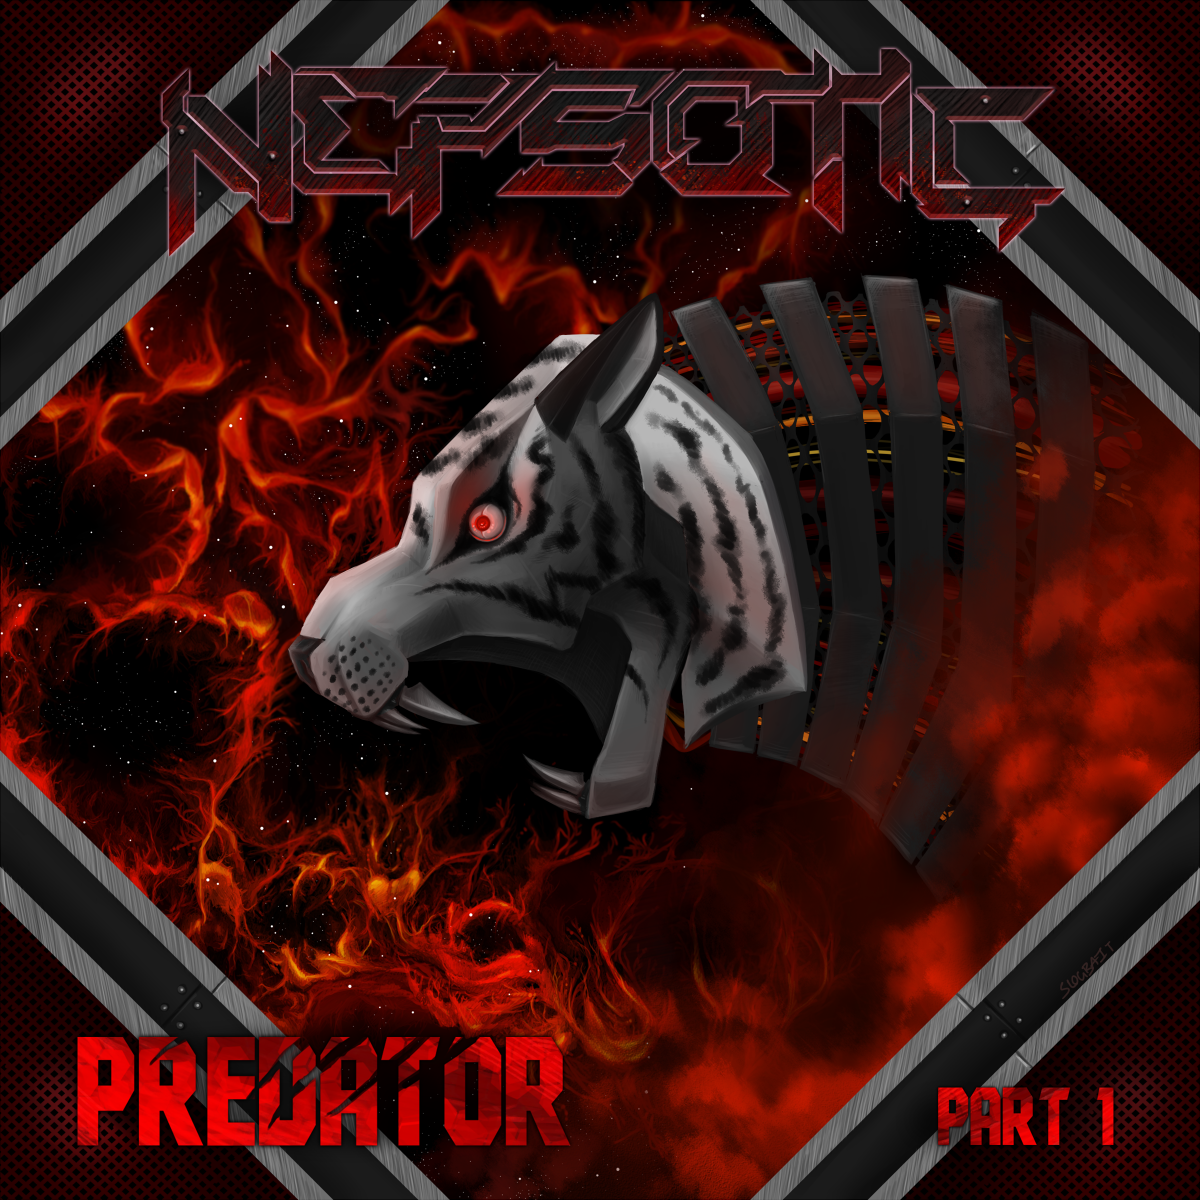 Predator LP Cover